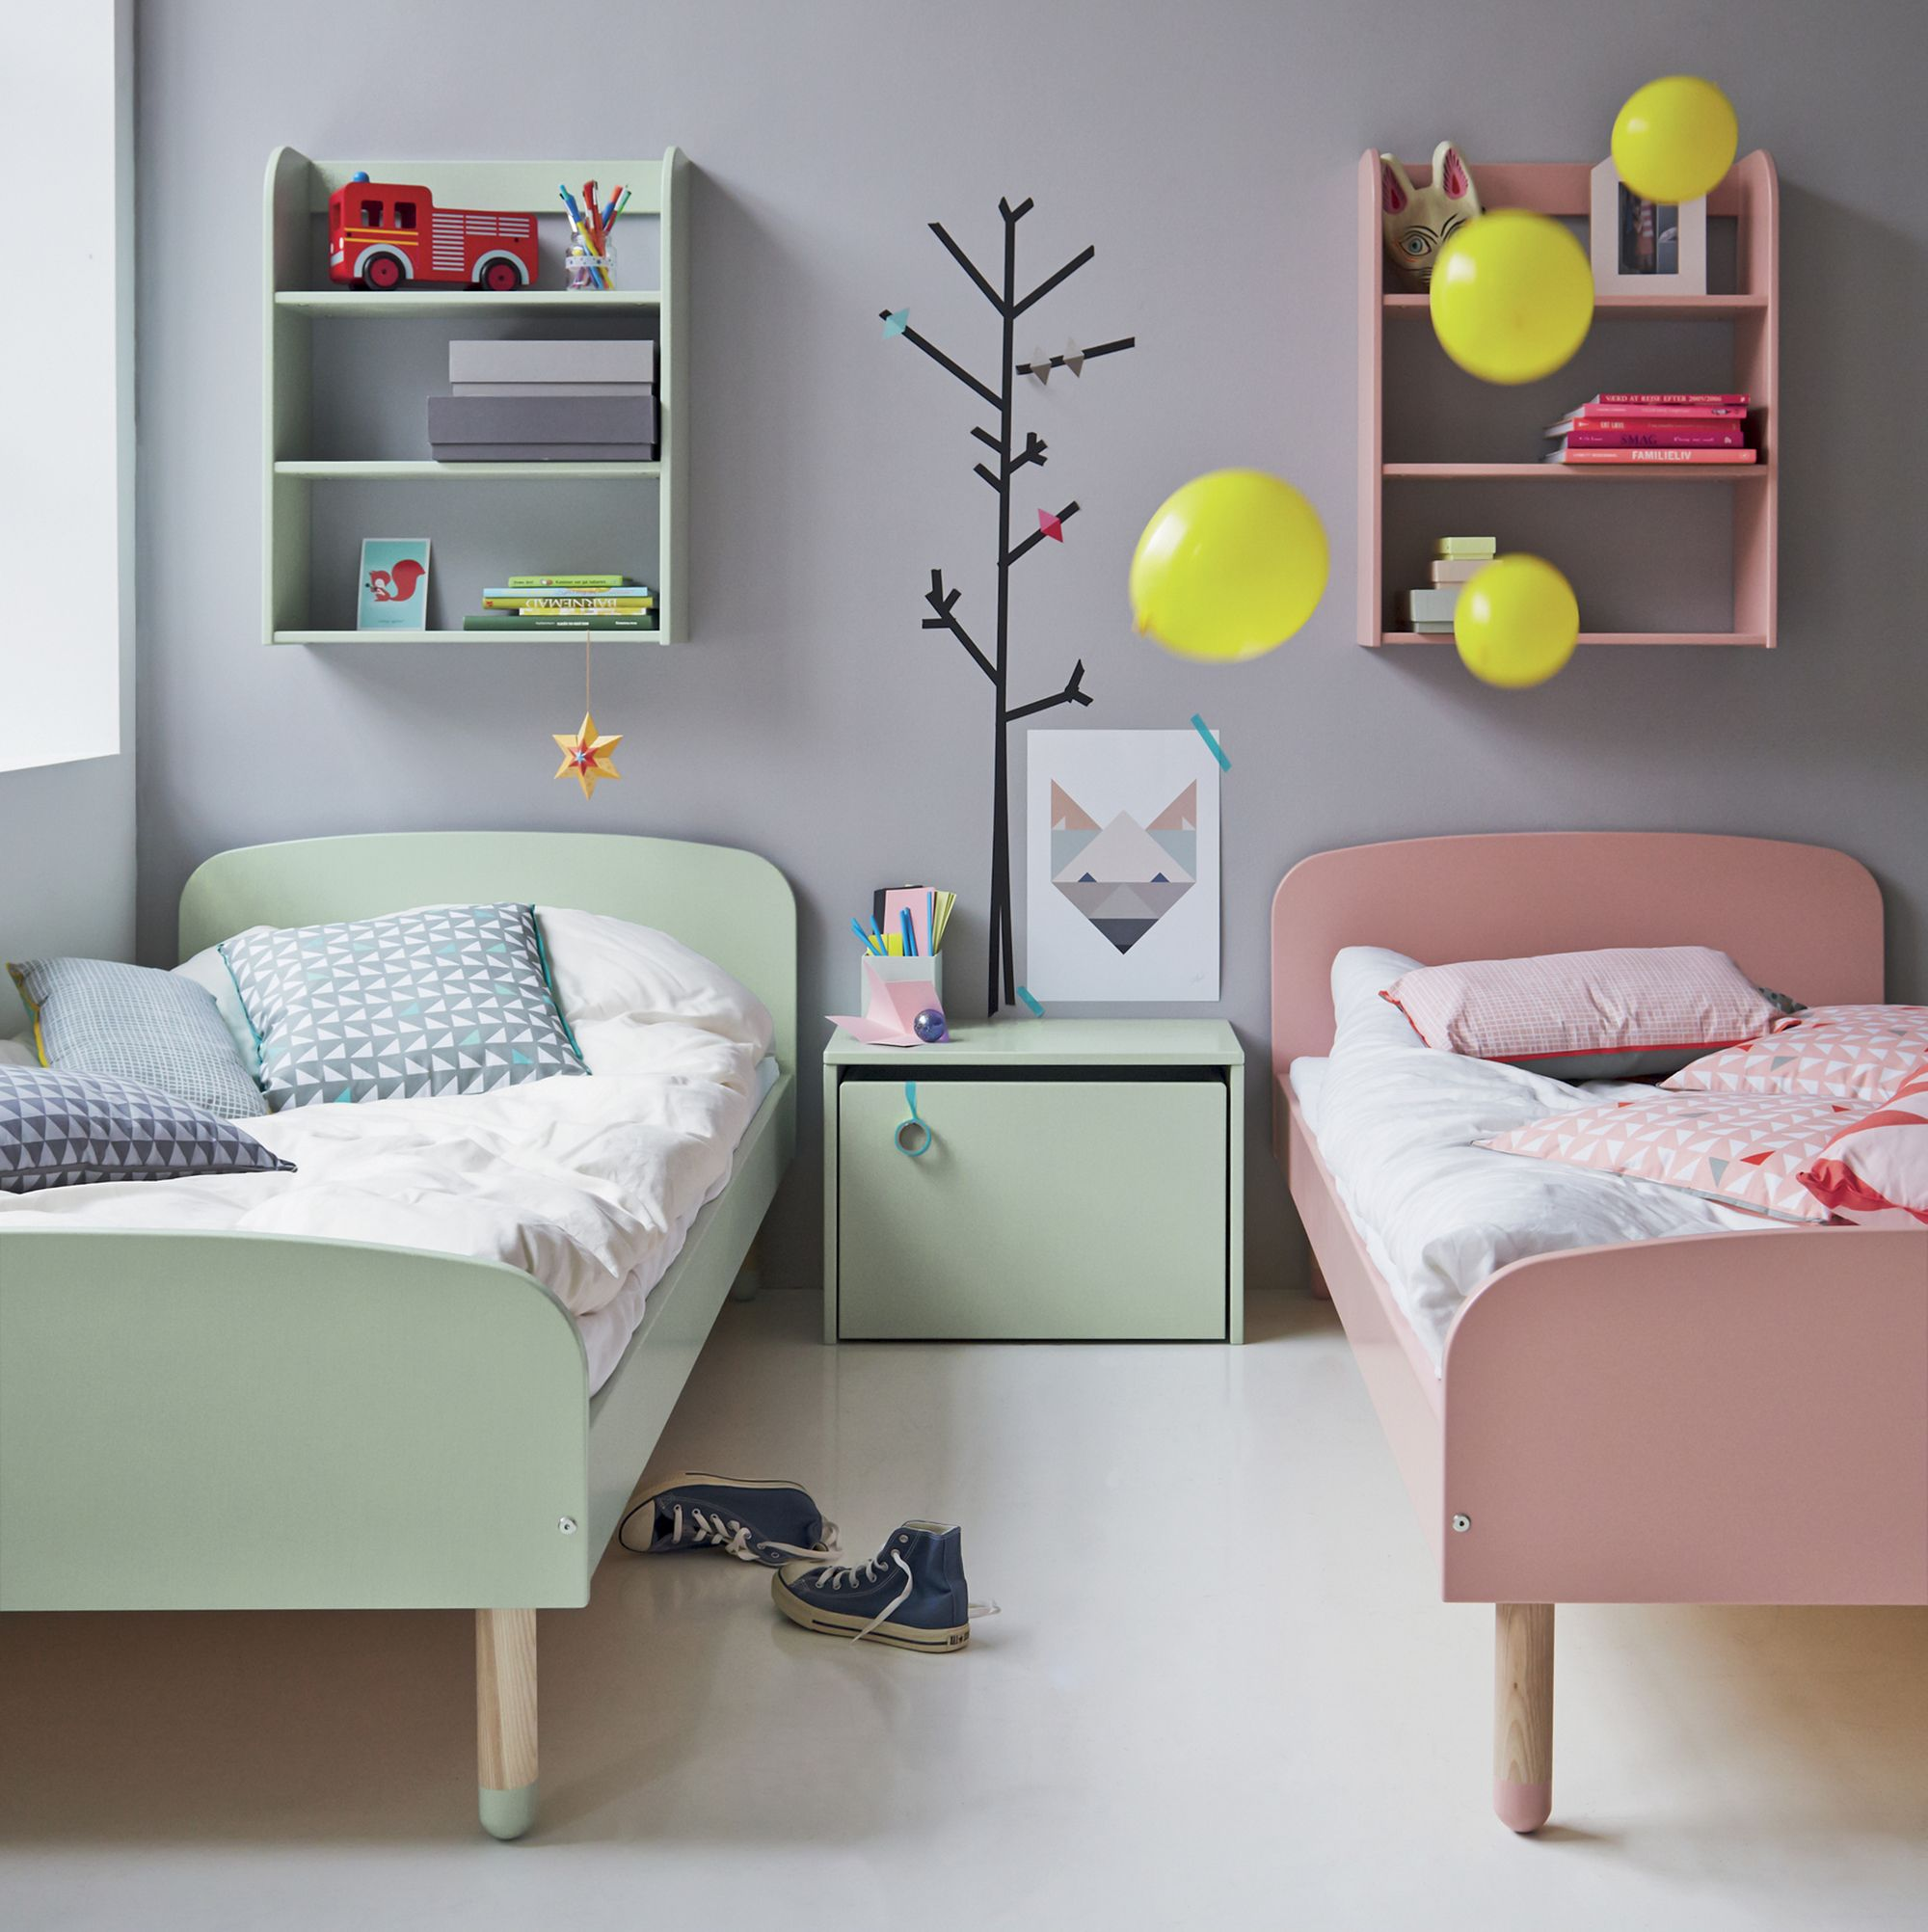 Shared Bedrooms For Girls Big Bedrooms For Girls Blue Big Boy Bedroom Ideas Zebra Bedroom Furniture: Flexa Kids Single Beds In Mint Green And Pink